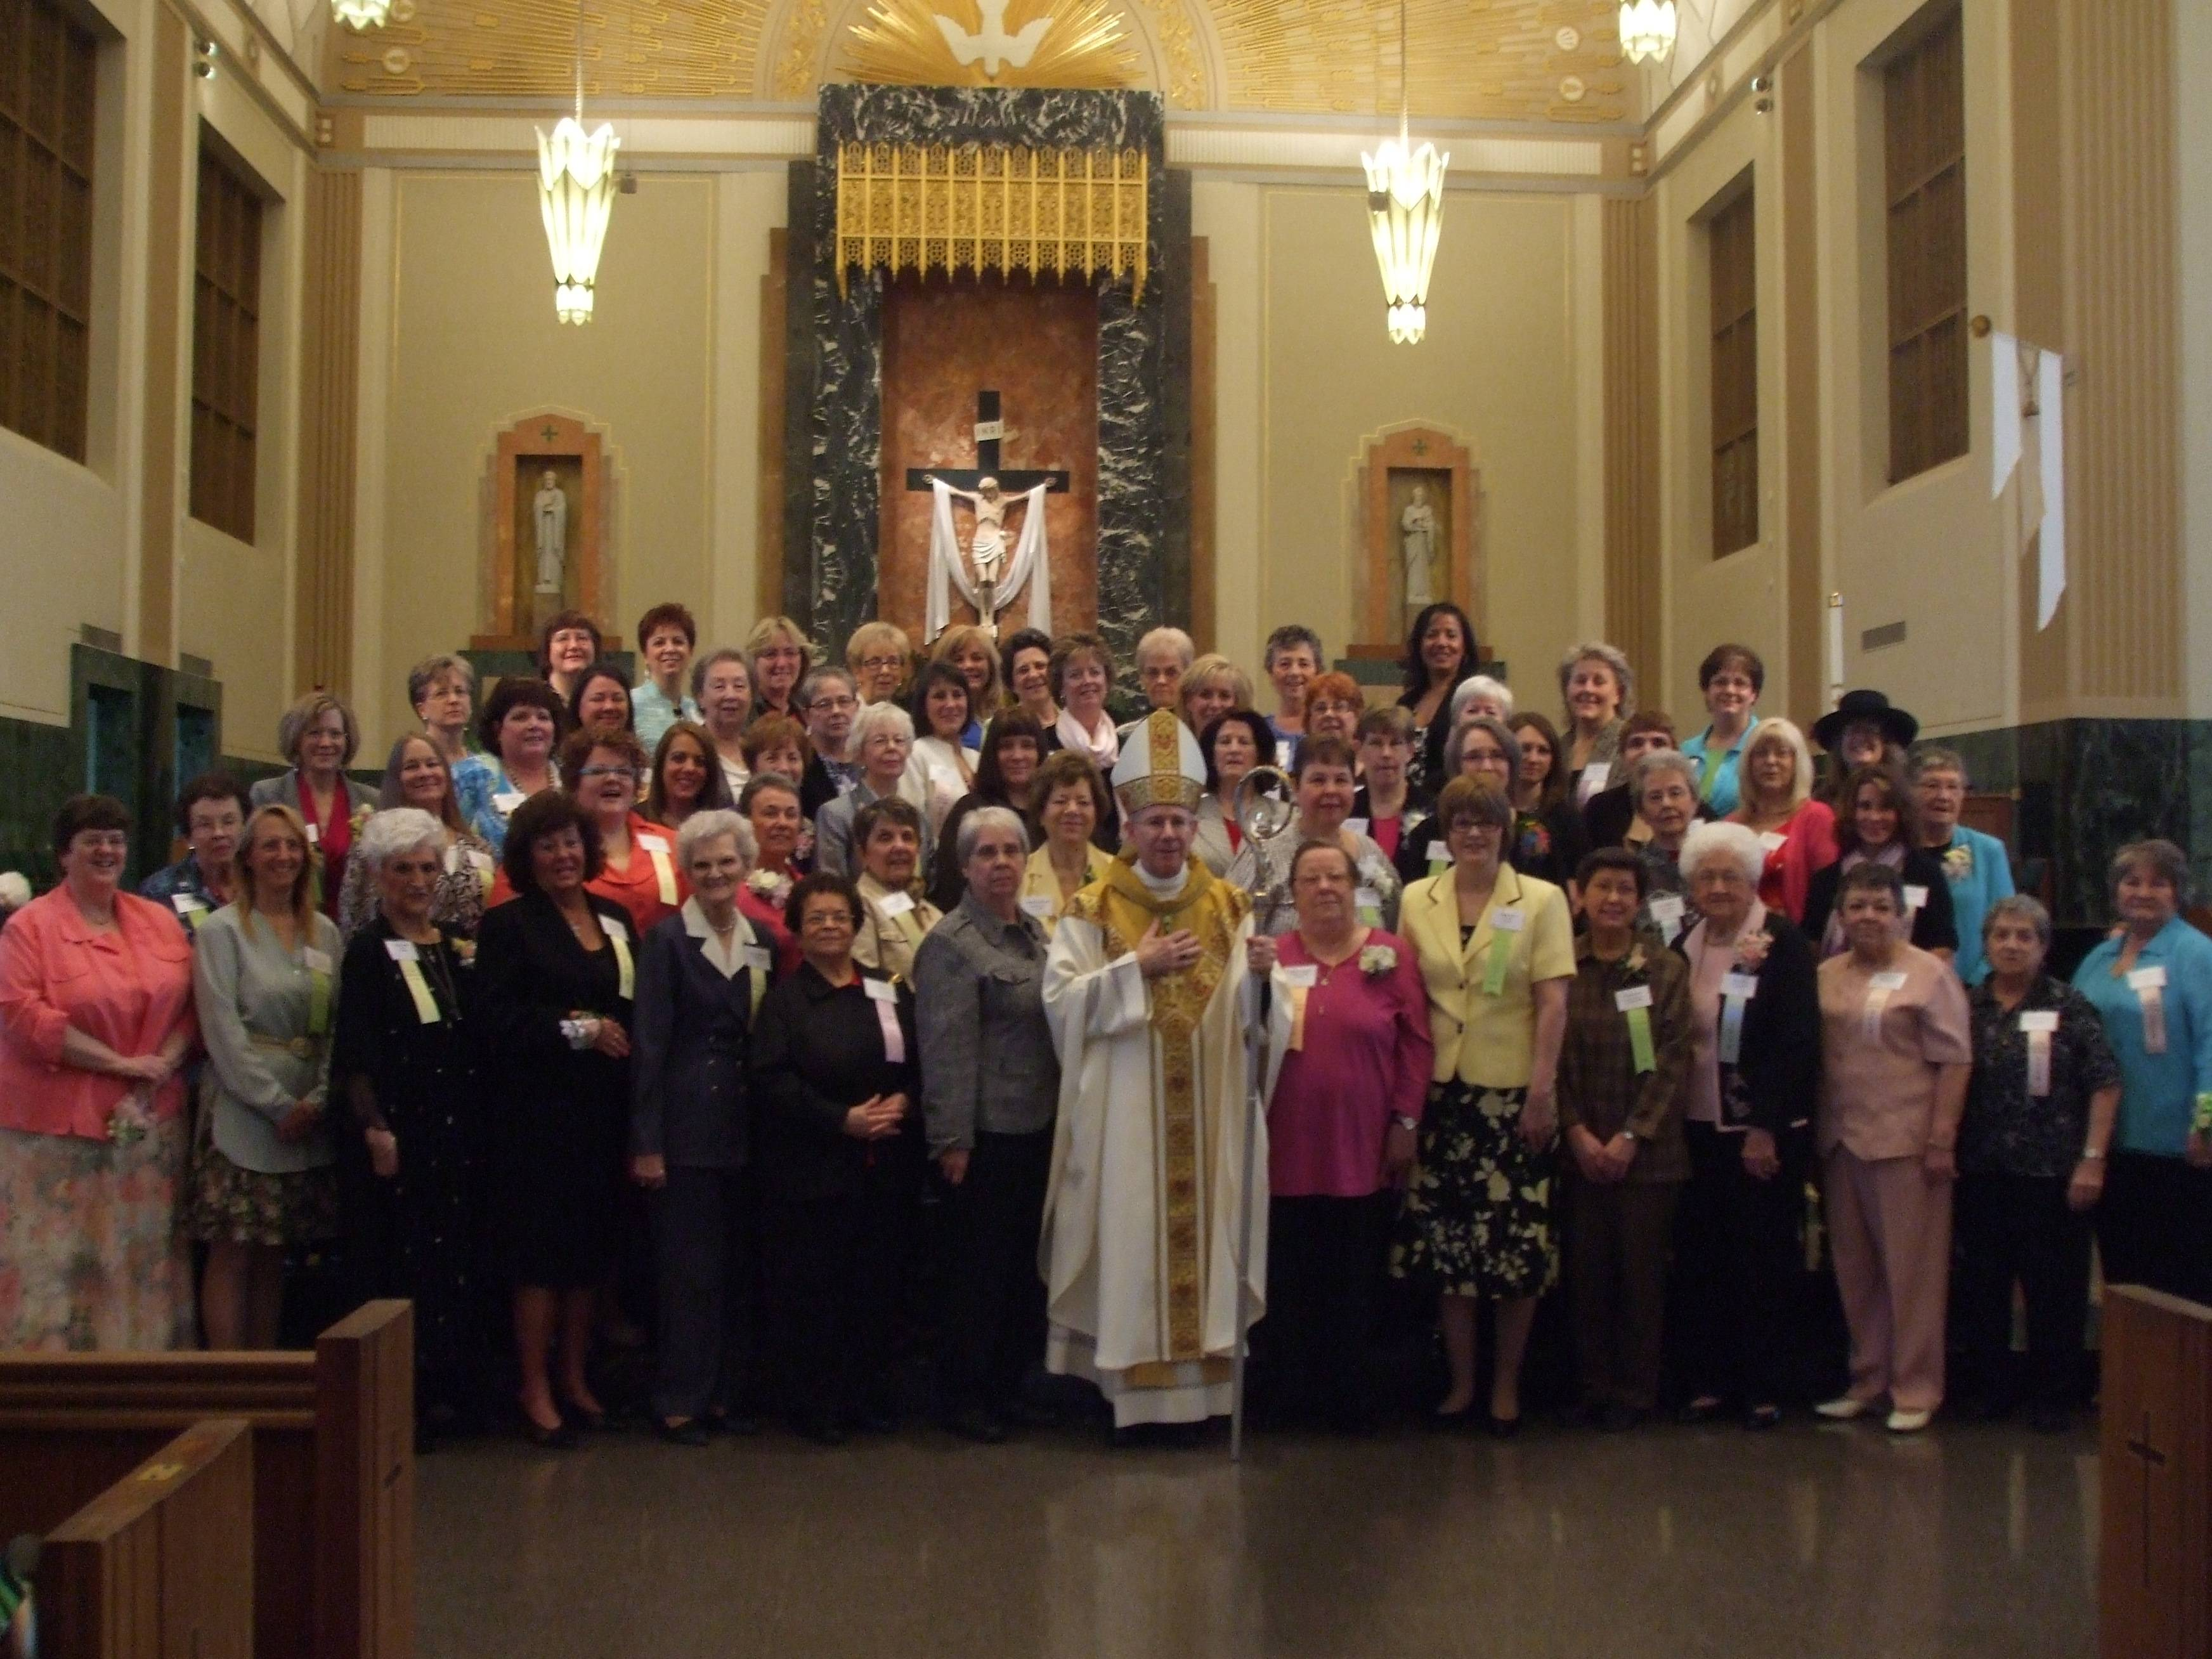 The ladies honored at the Women of the year Mass pose with Bishop Conlon on the altar at St. Raymond's Cathedral.